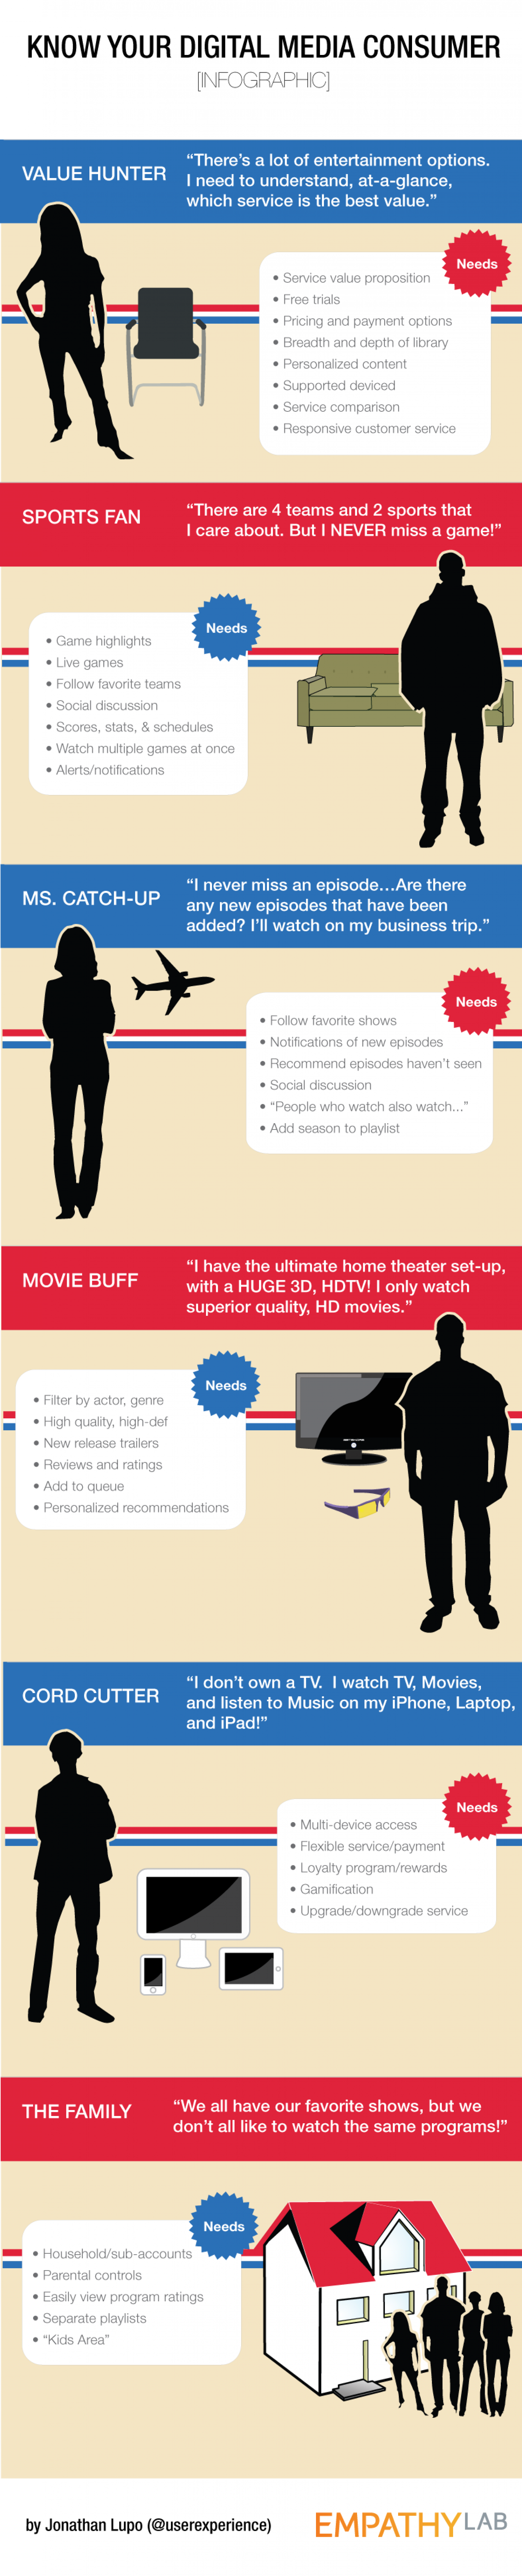 Know Your Digital Media Consumer Infographic